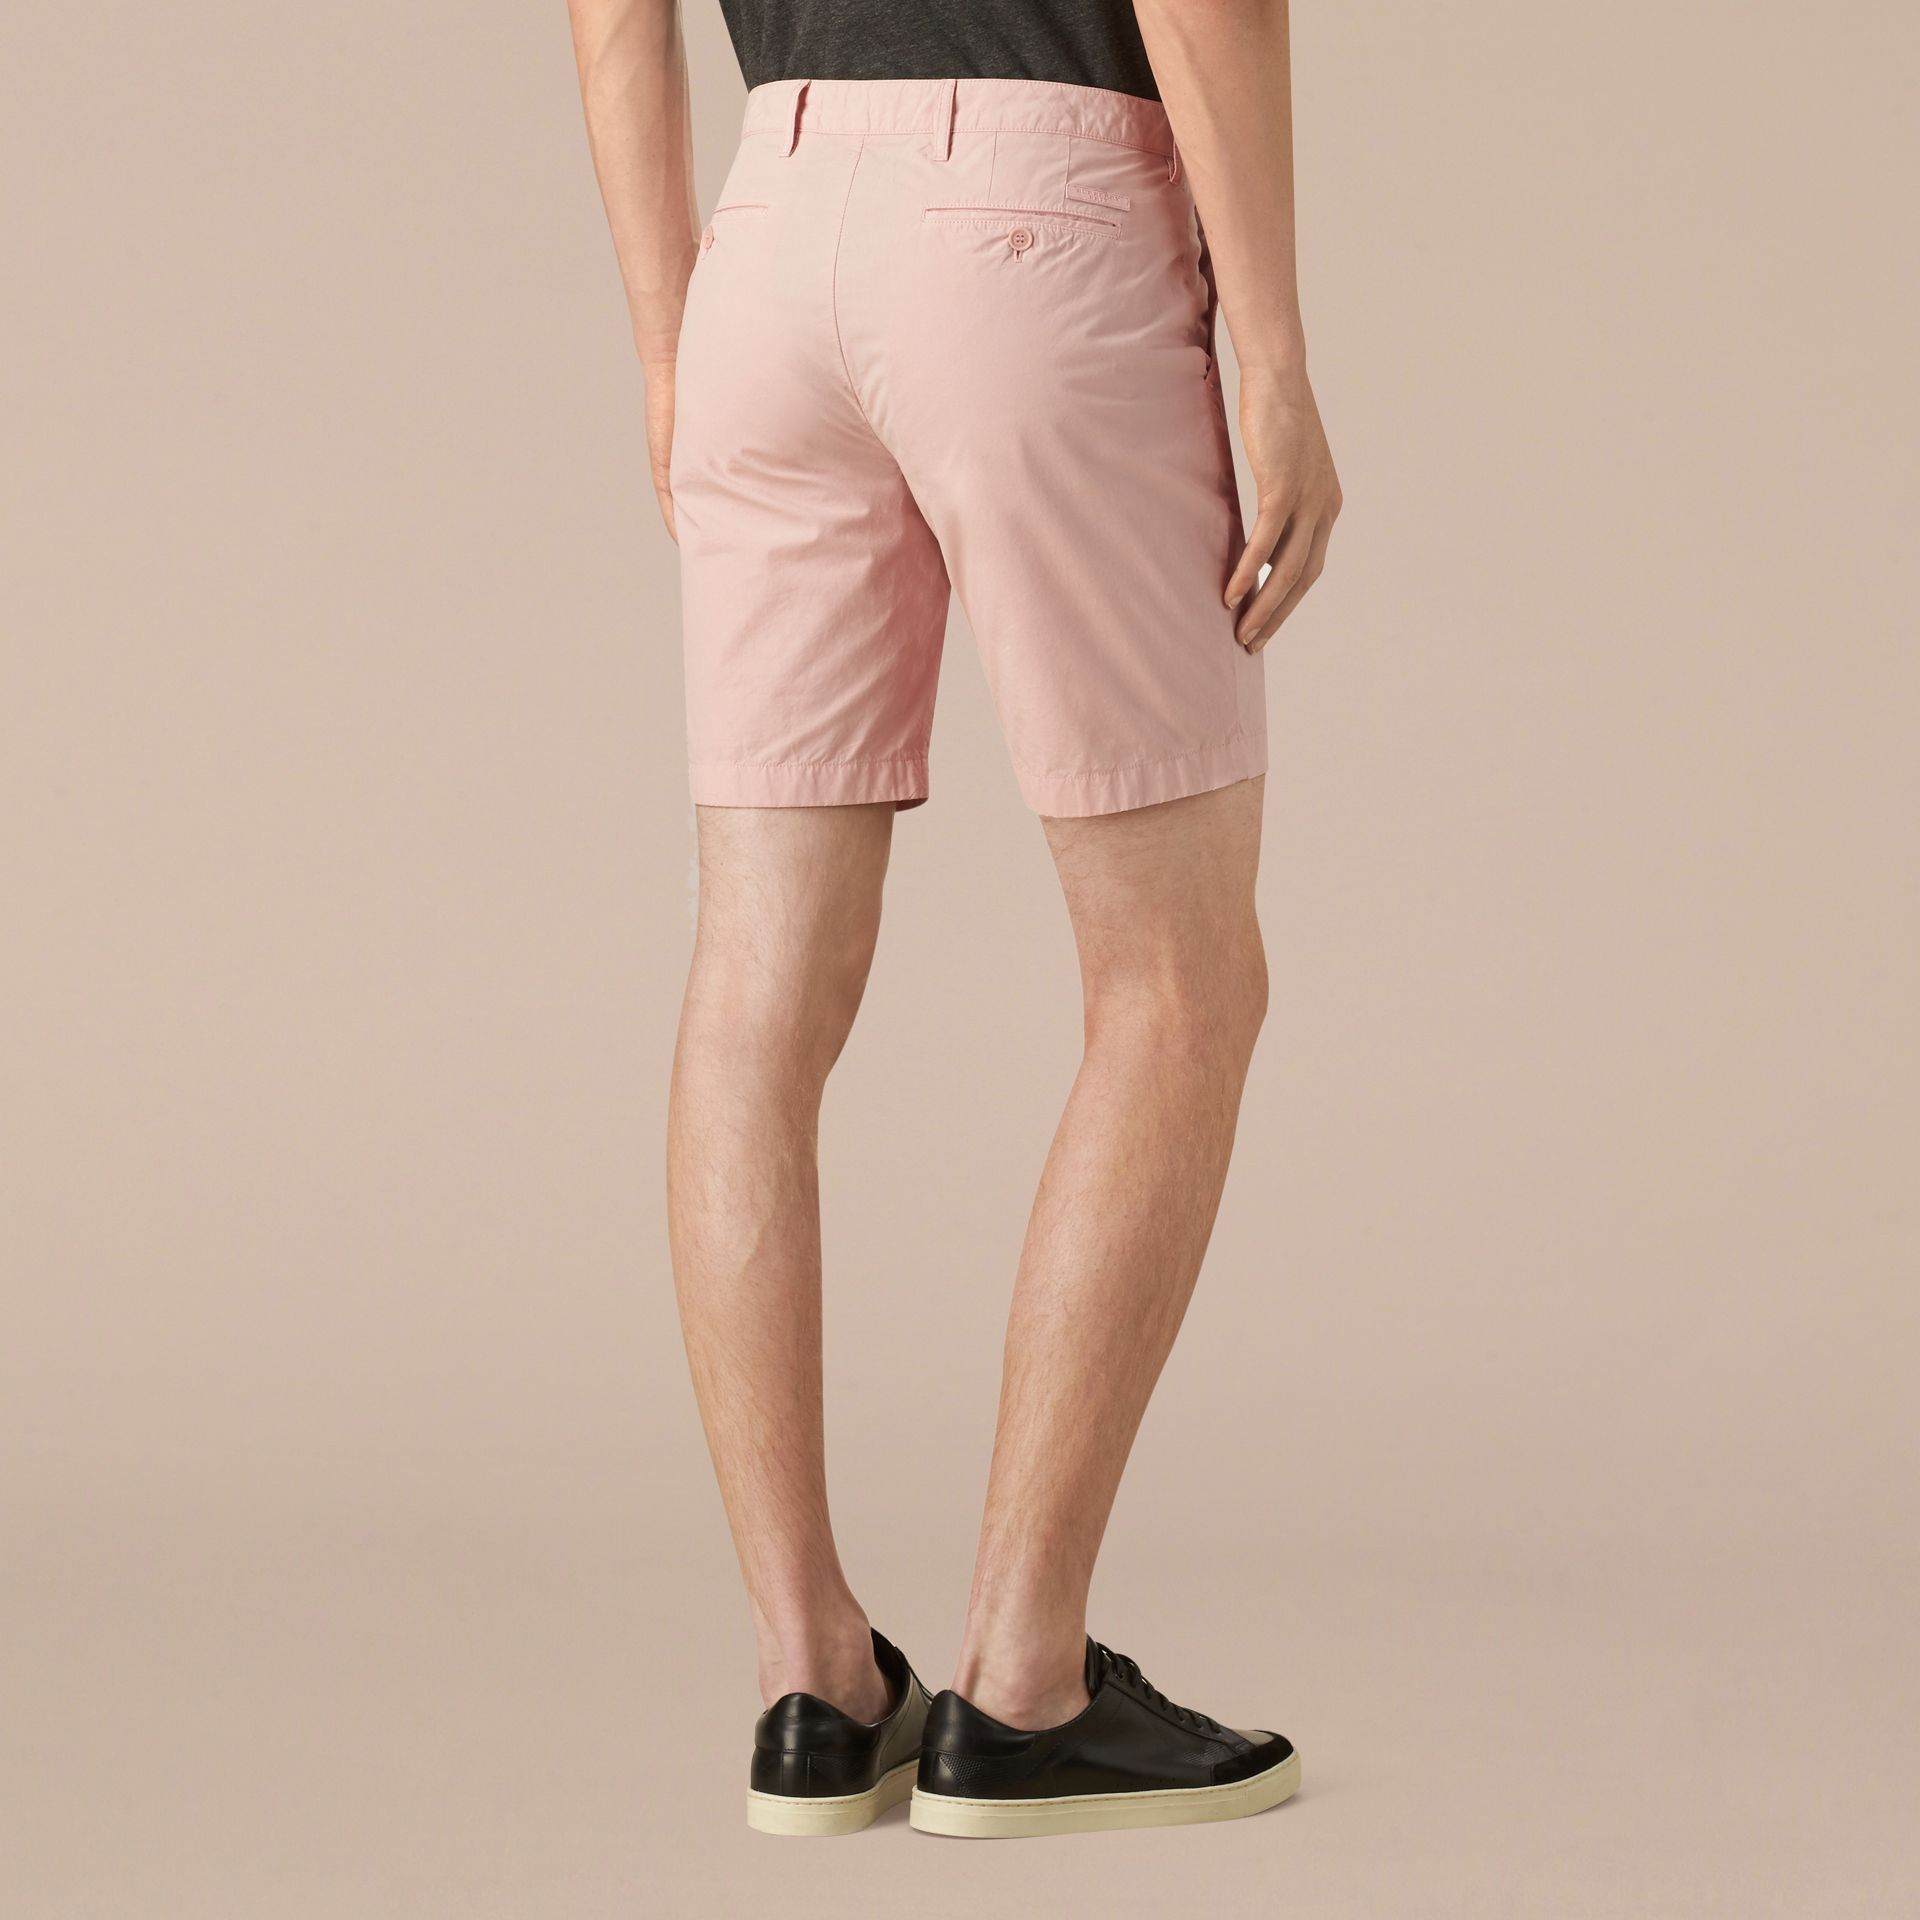 Rose craie Short chino en popeline de coton Rose Craie - photo de la galerie 2